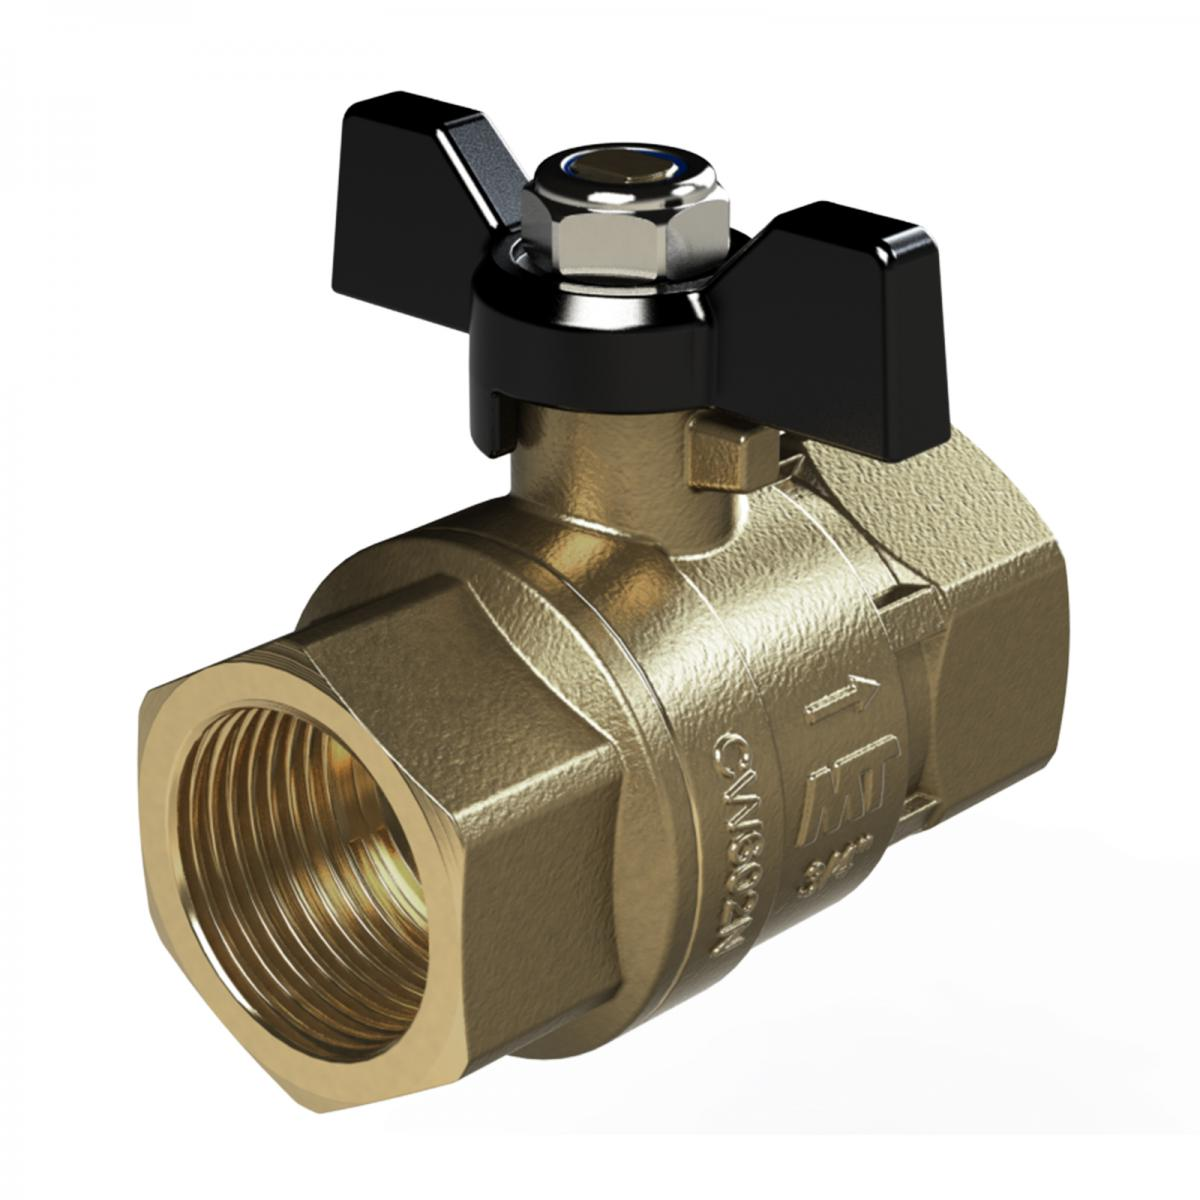 Male X Female Threaded Fitting with a Butterfly Handle Brass Ball Valve Full Bore